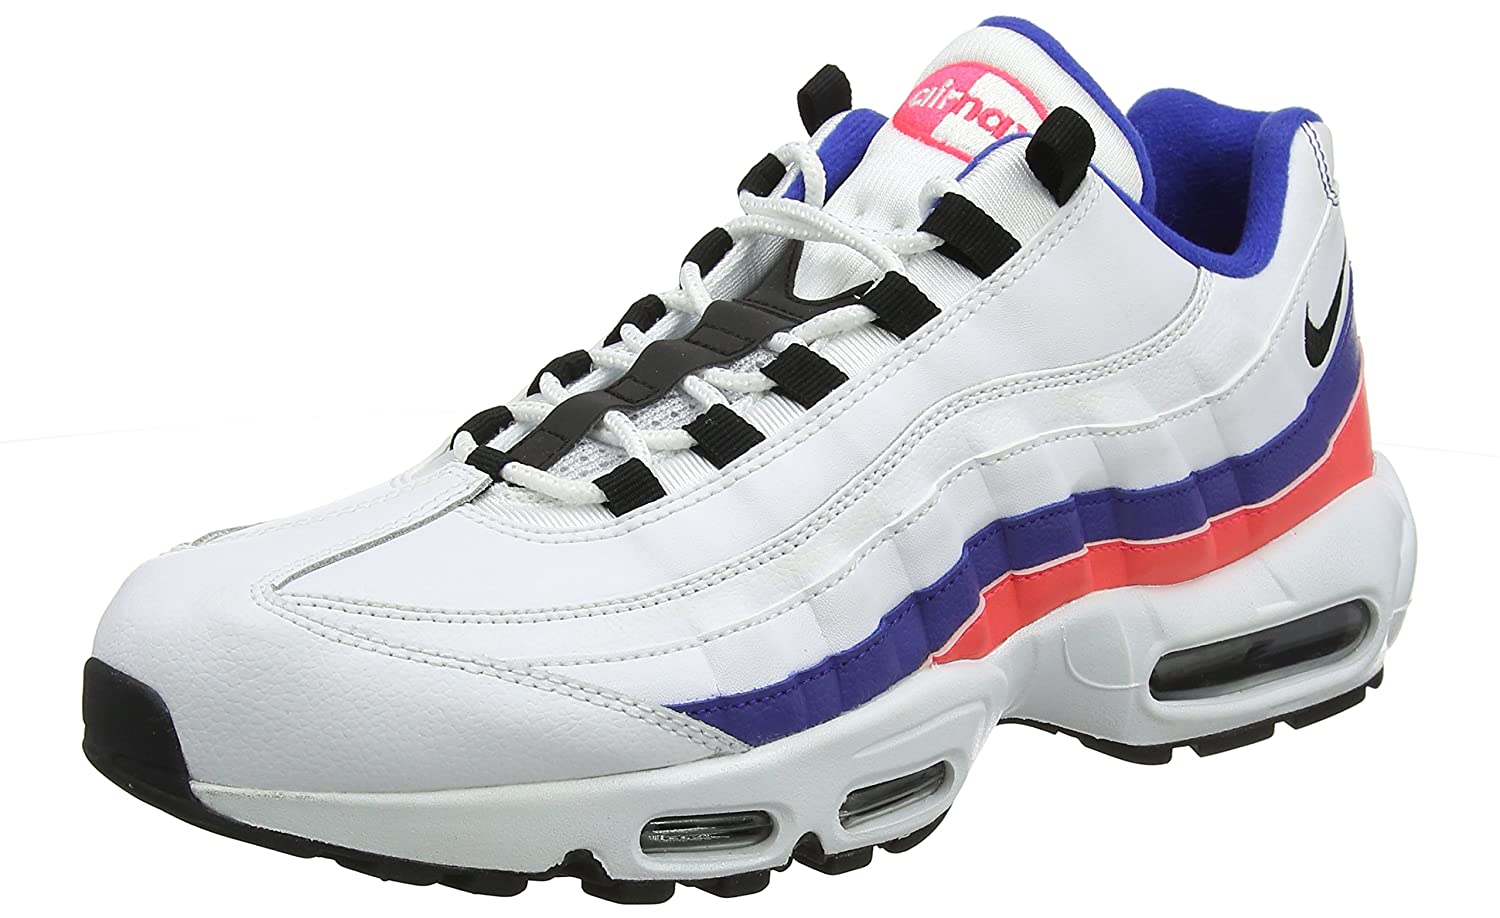 51158bbd25 Amazon.com | NIKE Men's Air Max 95 White/Black/Solar Red/Ultramarine  Synthetic Casual Shoes 14 (D) M US (14) | Shoes